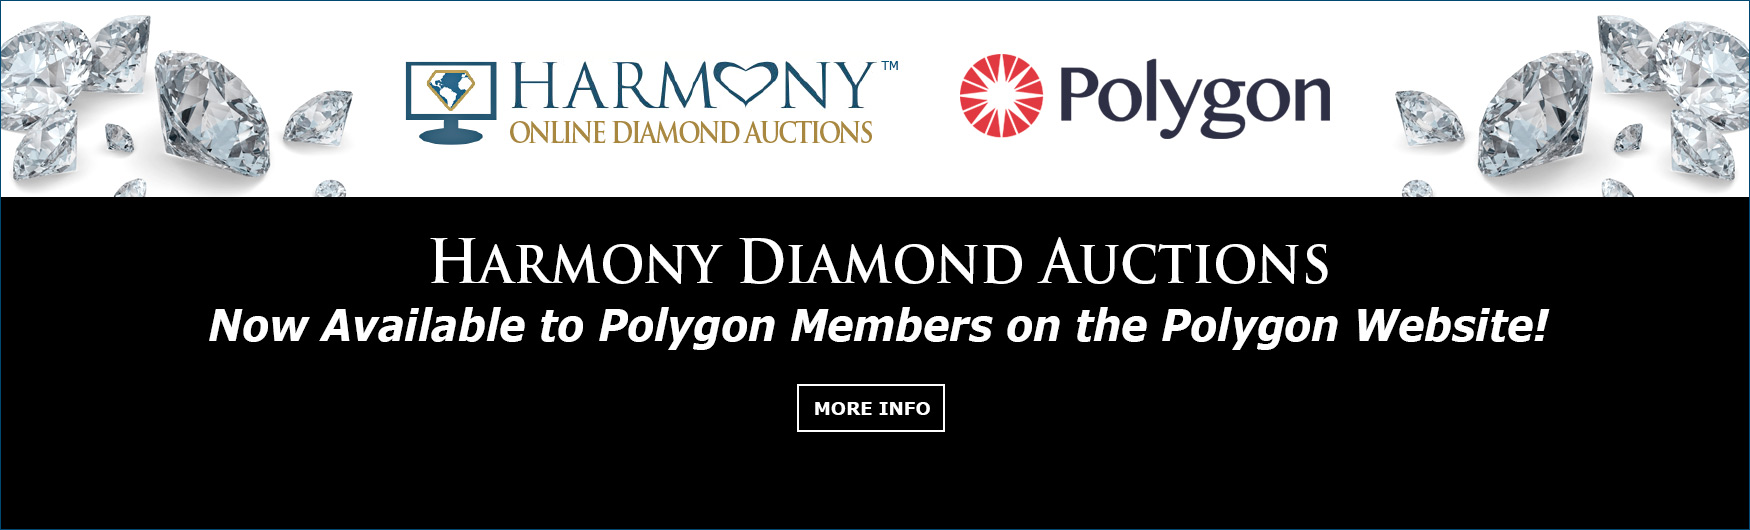 Polygon Partnership